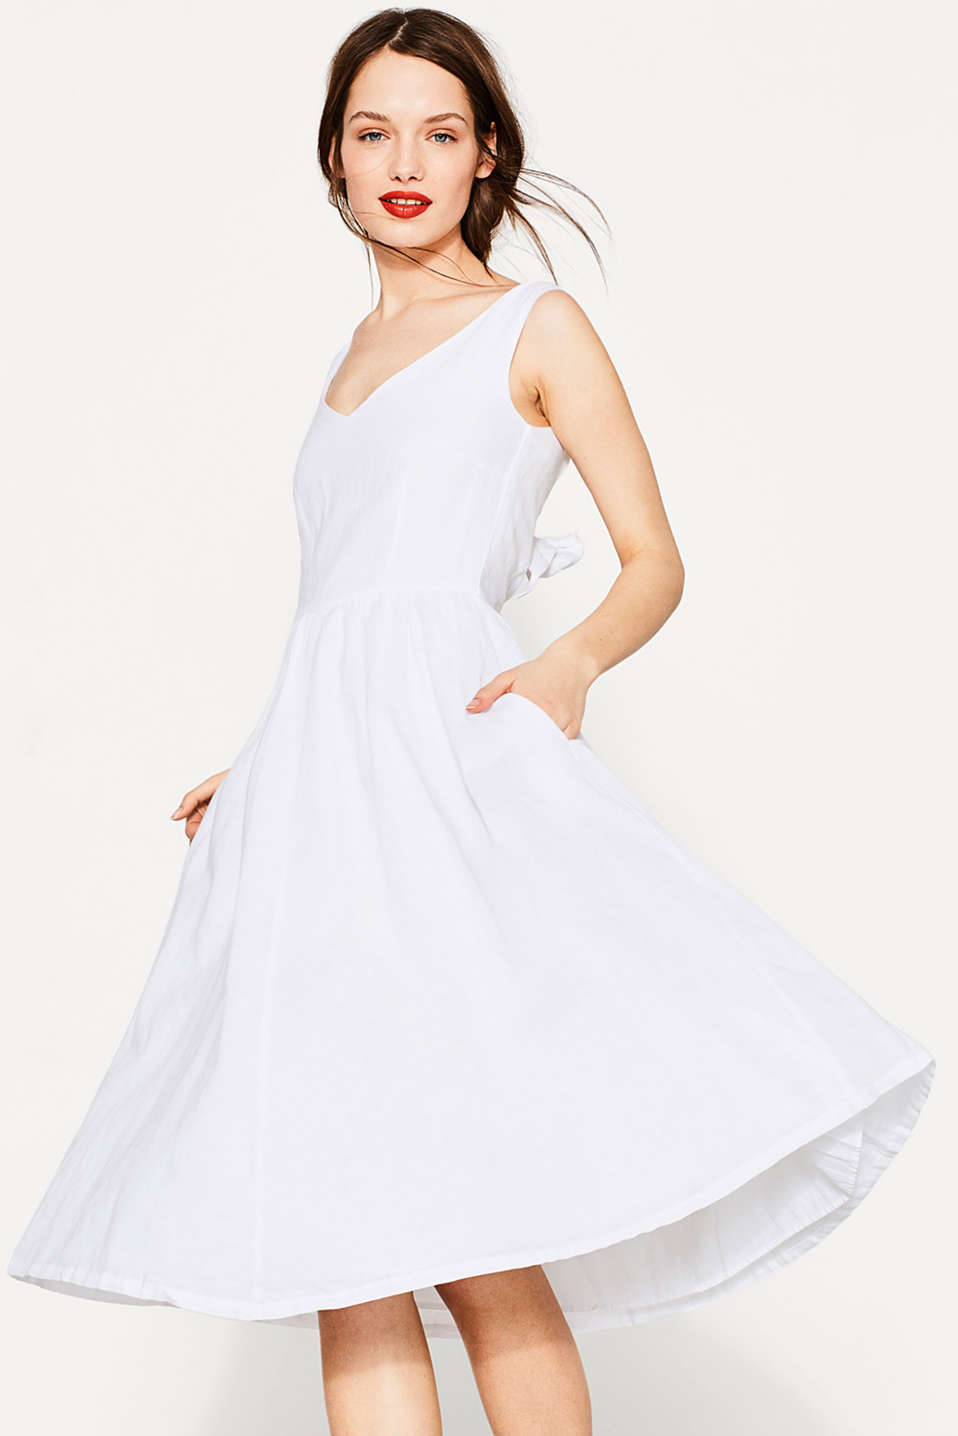 Dress in blended linen/cotton